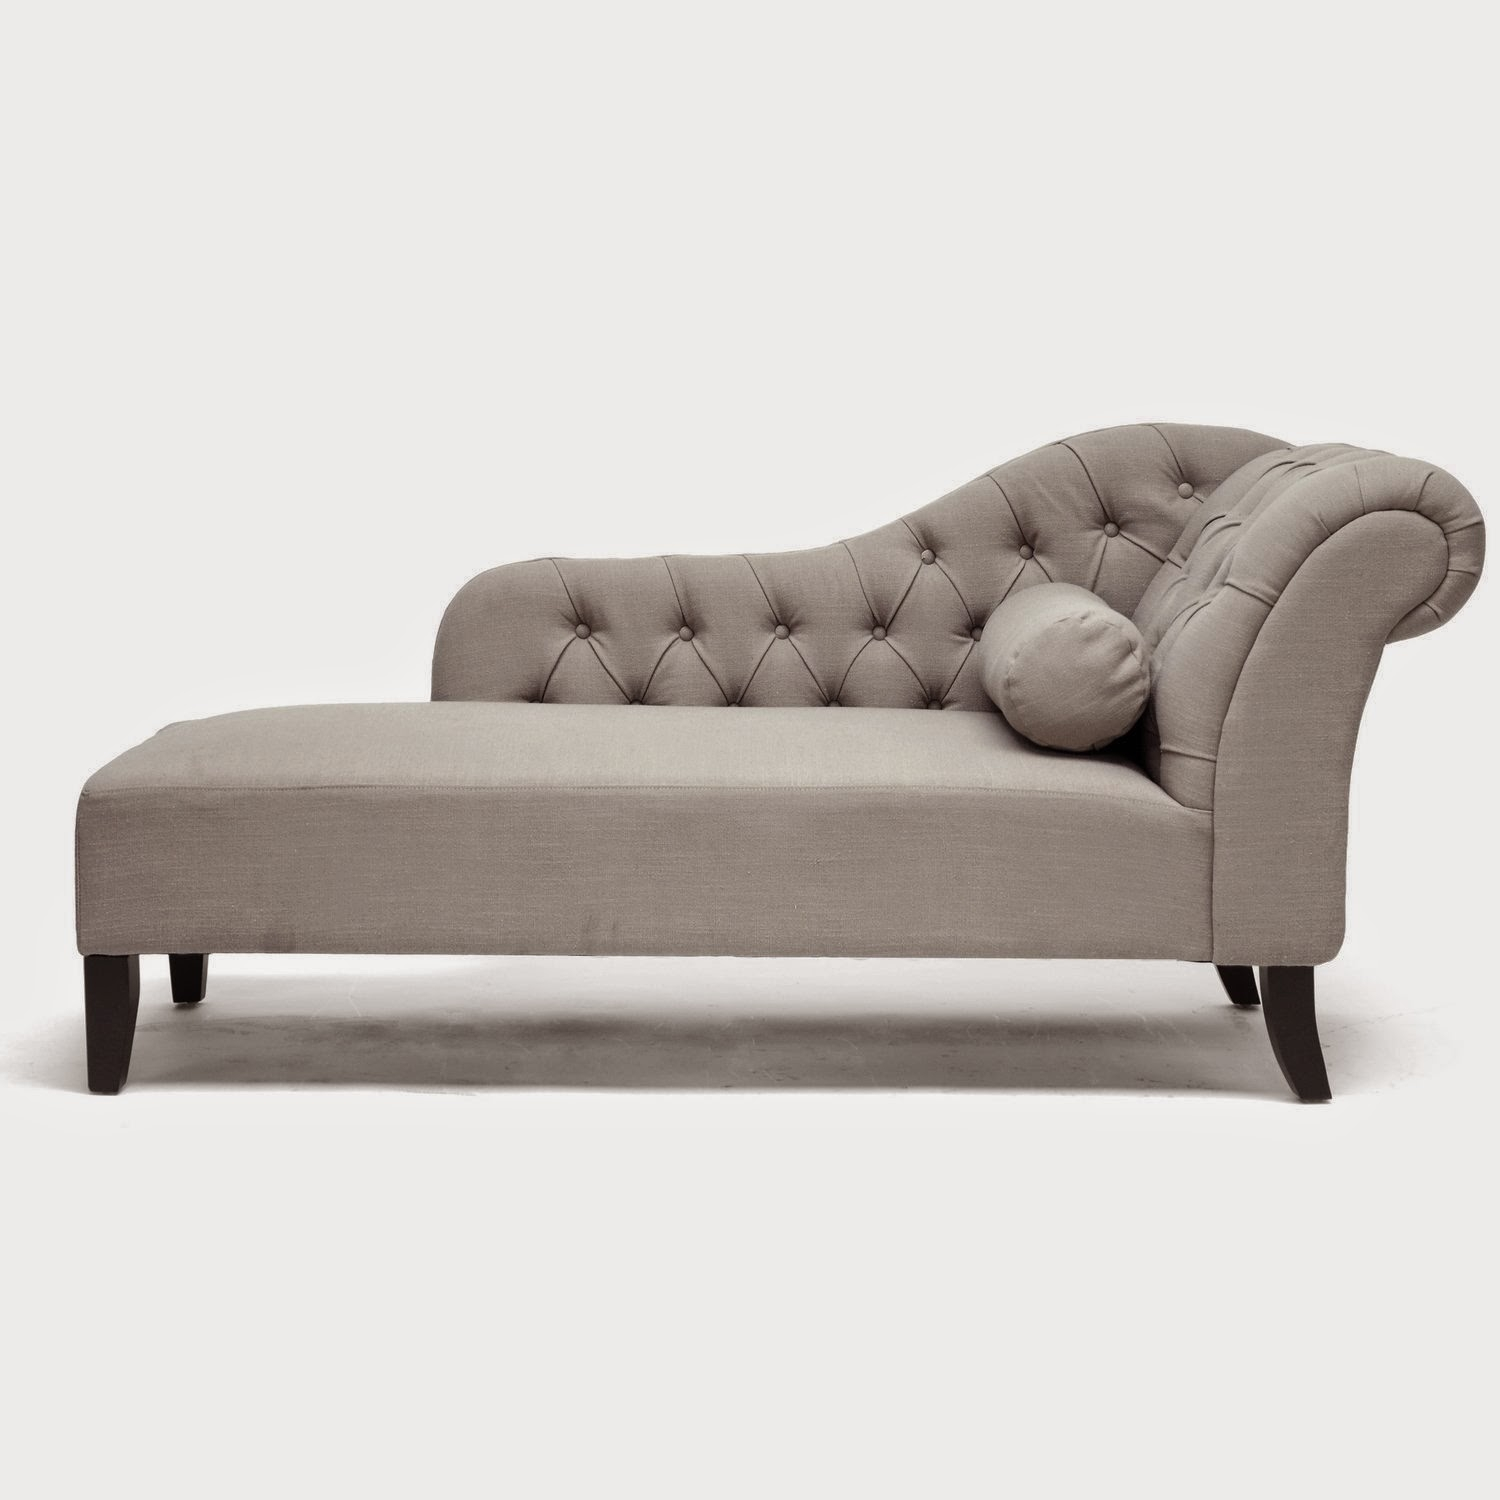 Baxton studio aphrodite tufted putty gray linen modern chaise lounge  sc 1 st  Foter : chair chaise lounge - Cheerinfomania.Com